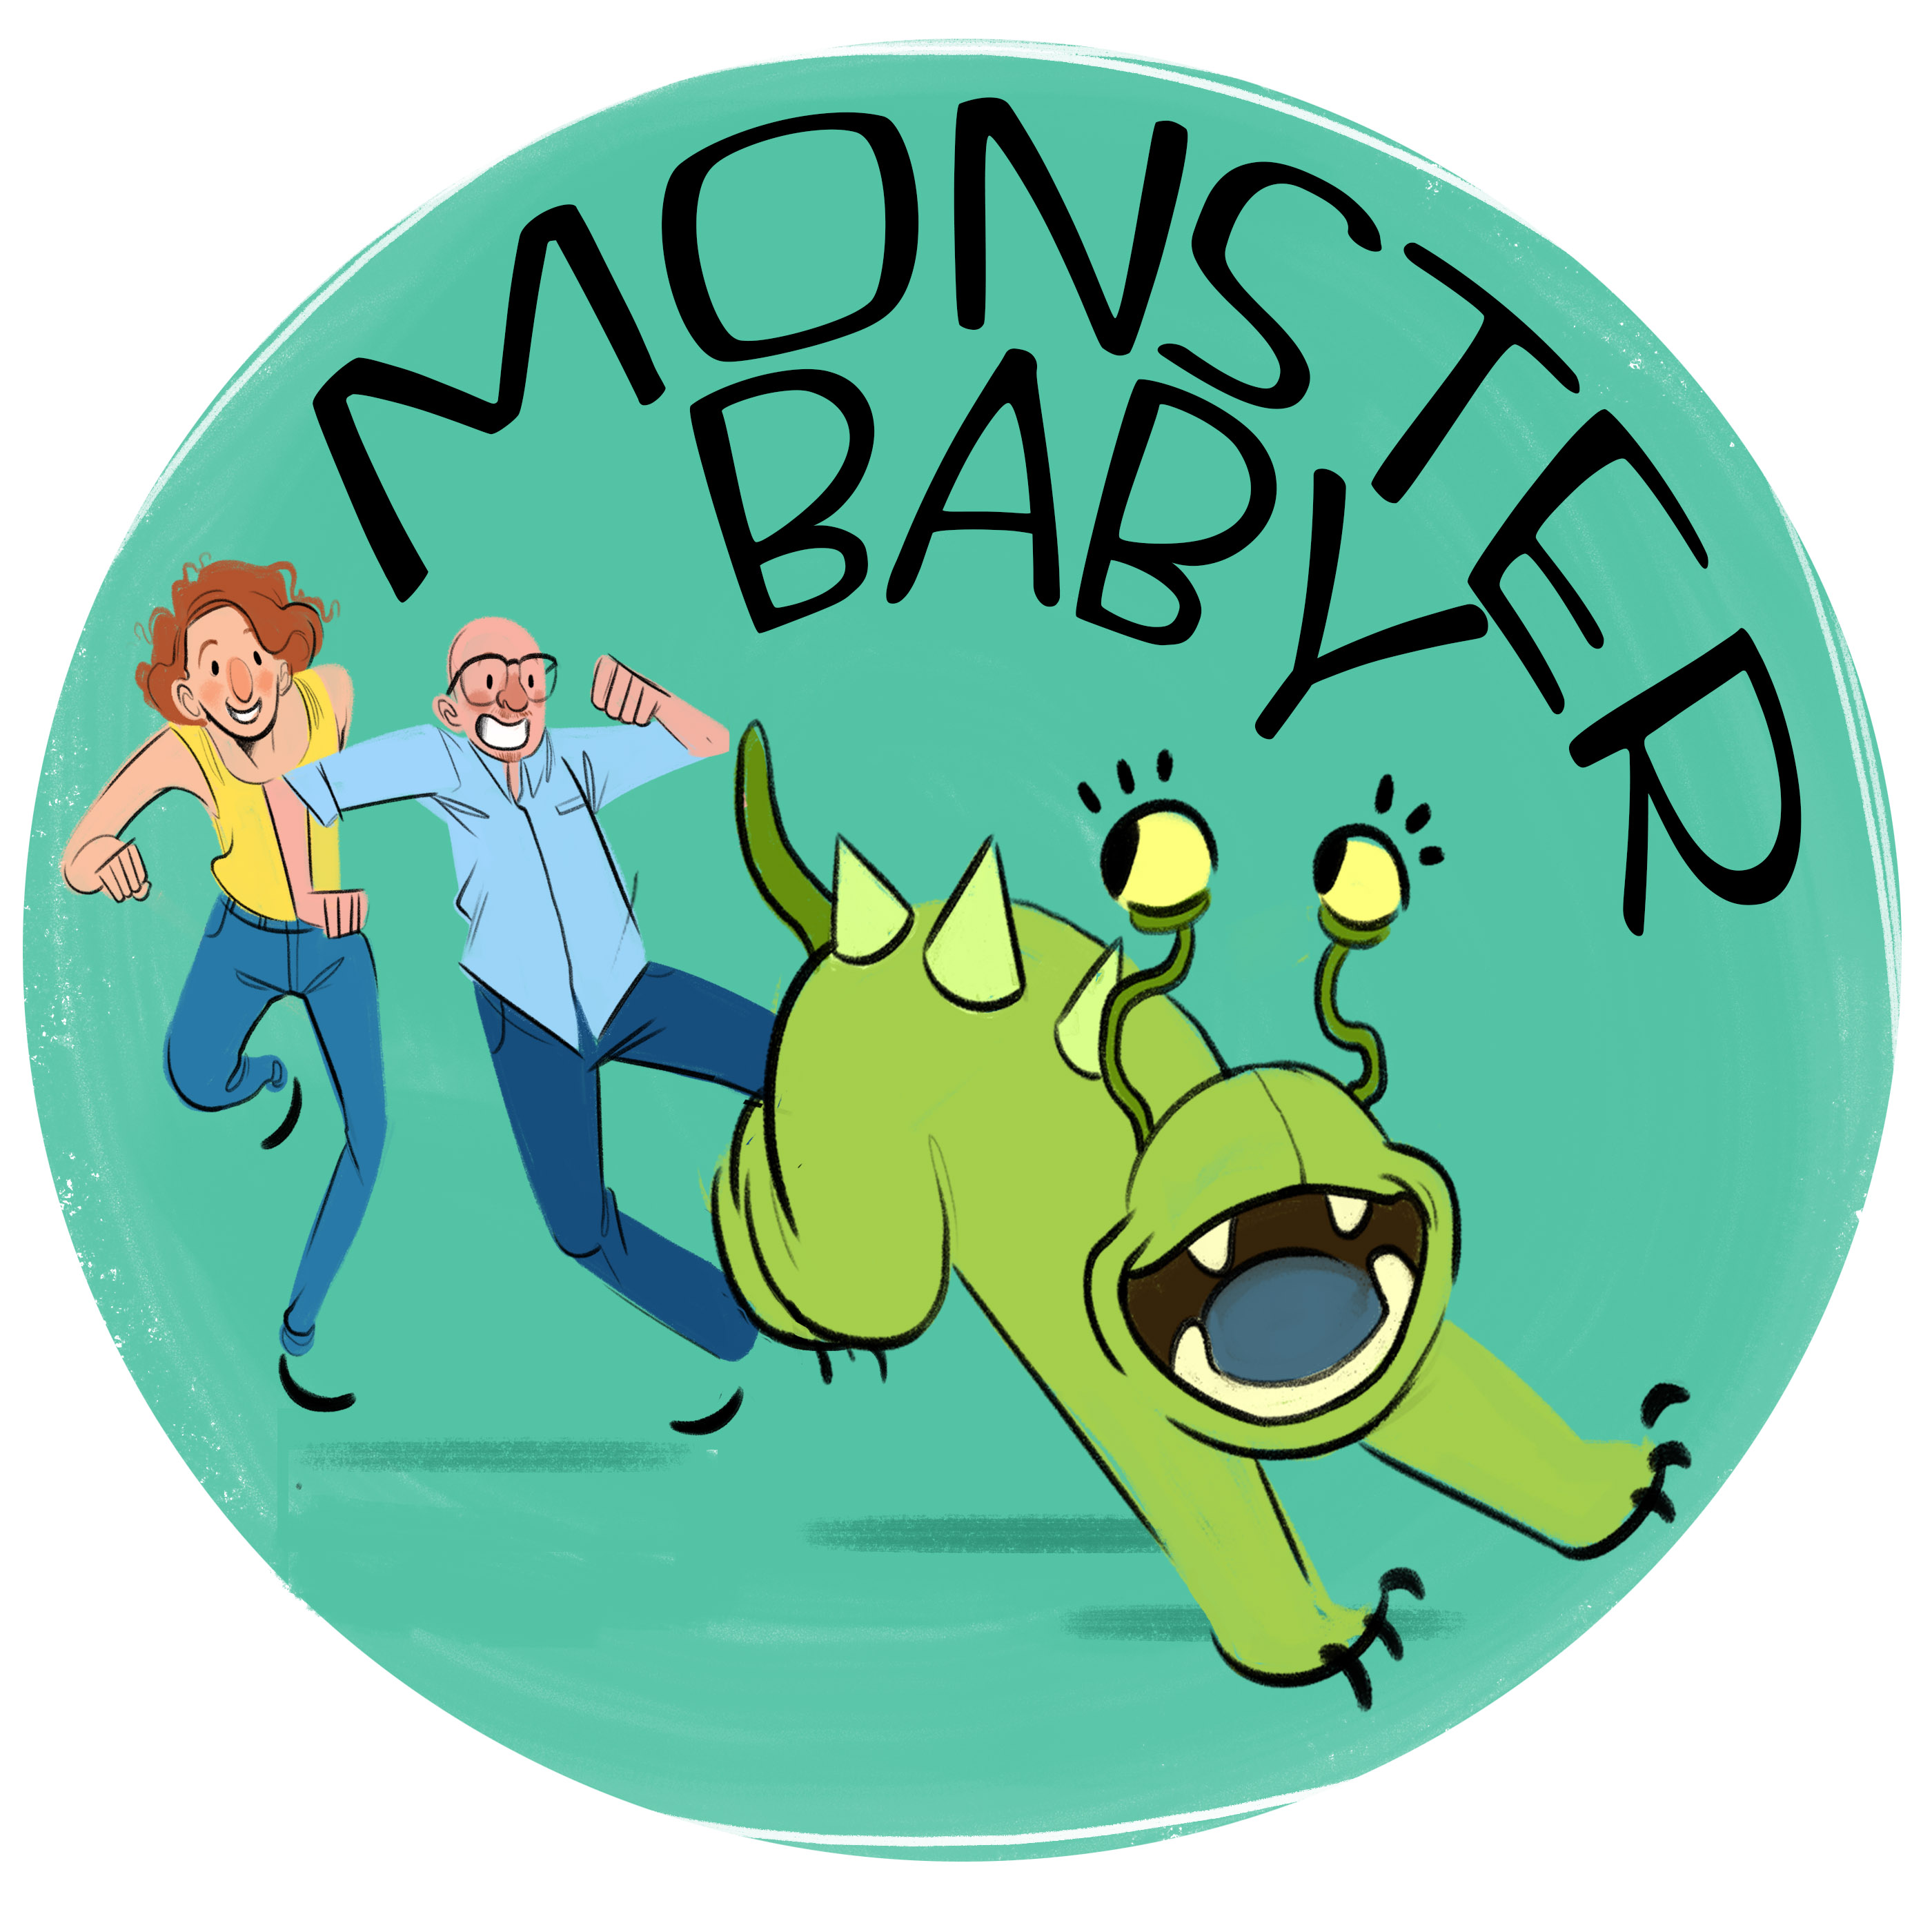 Monster Baby: A Curious Romp Through the Worlds of Mindfulness and Improvisation